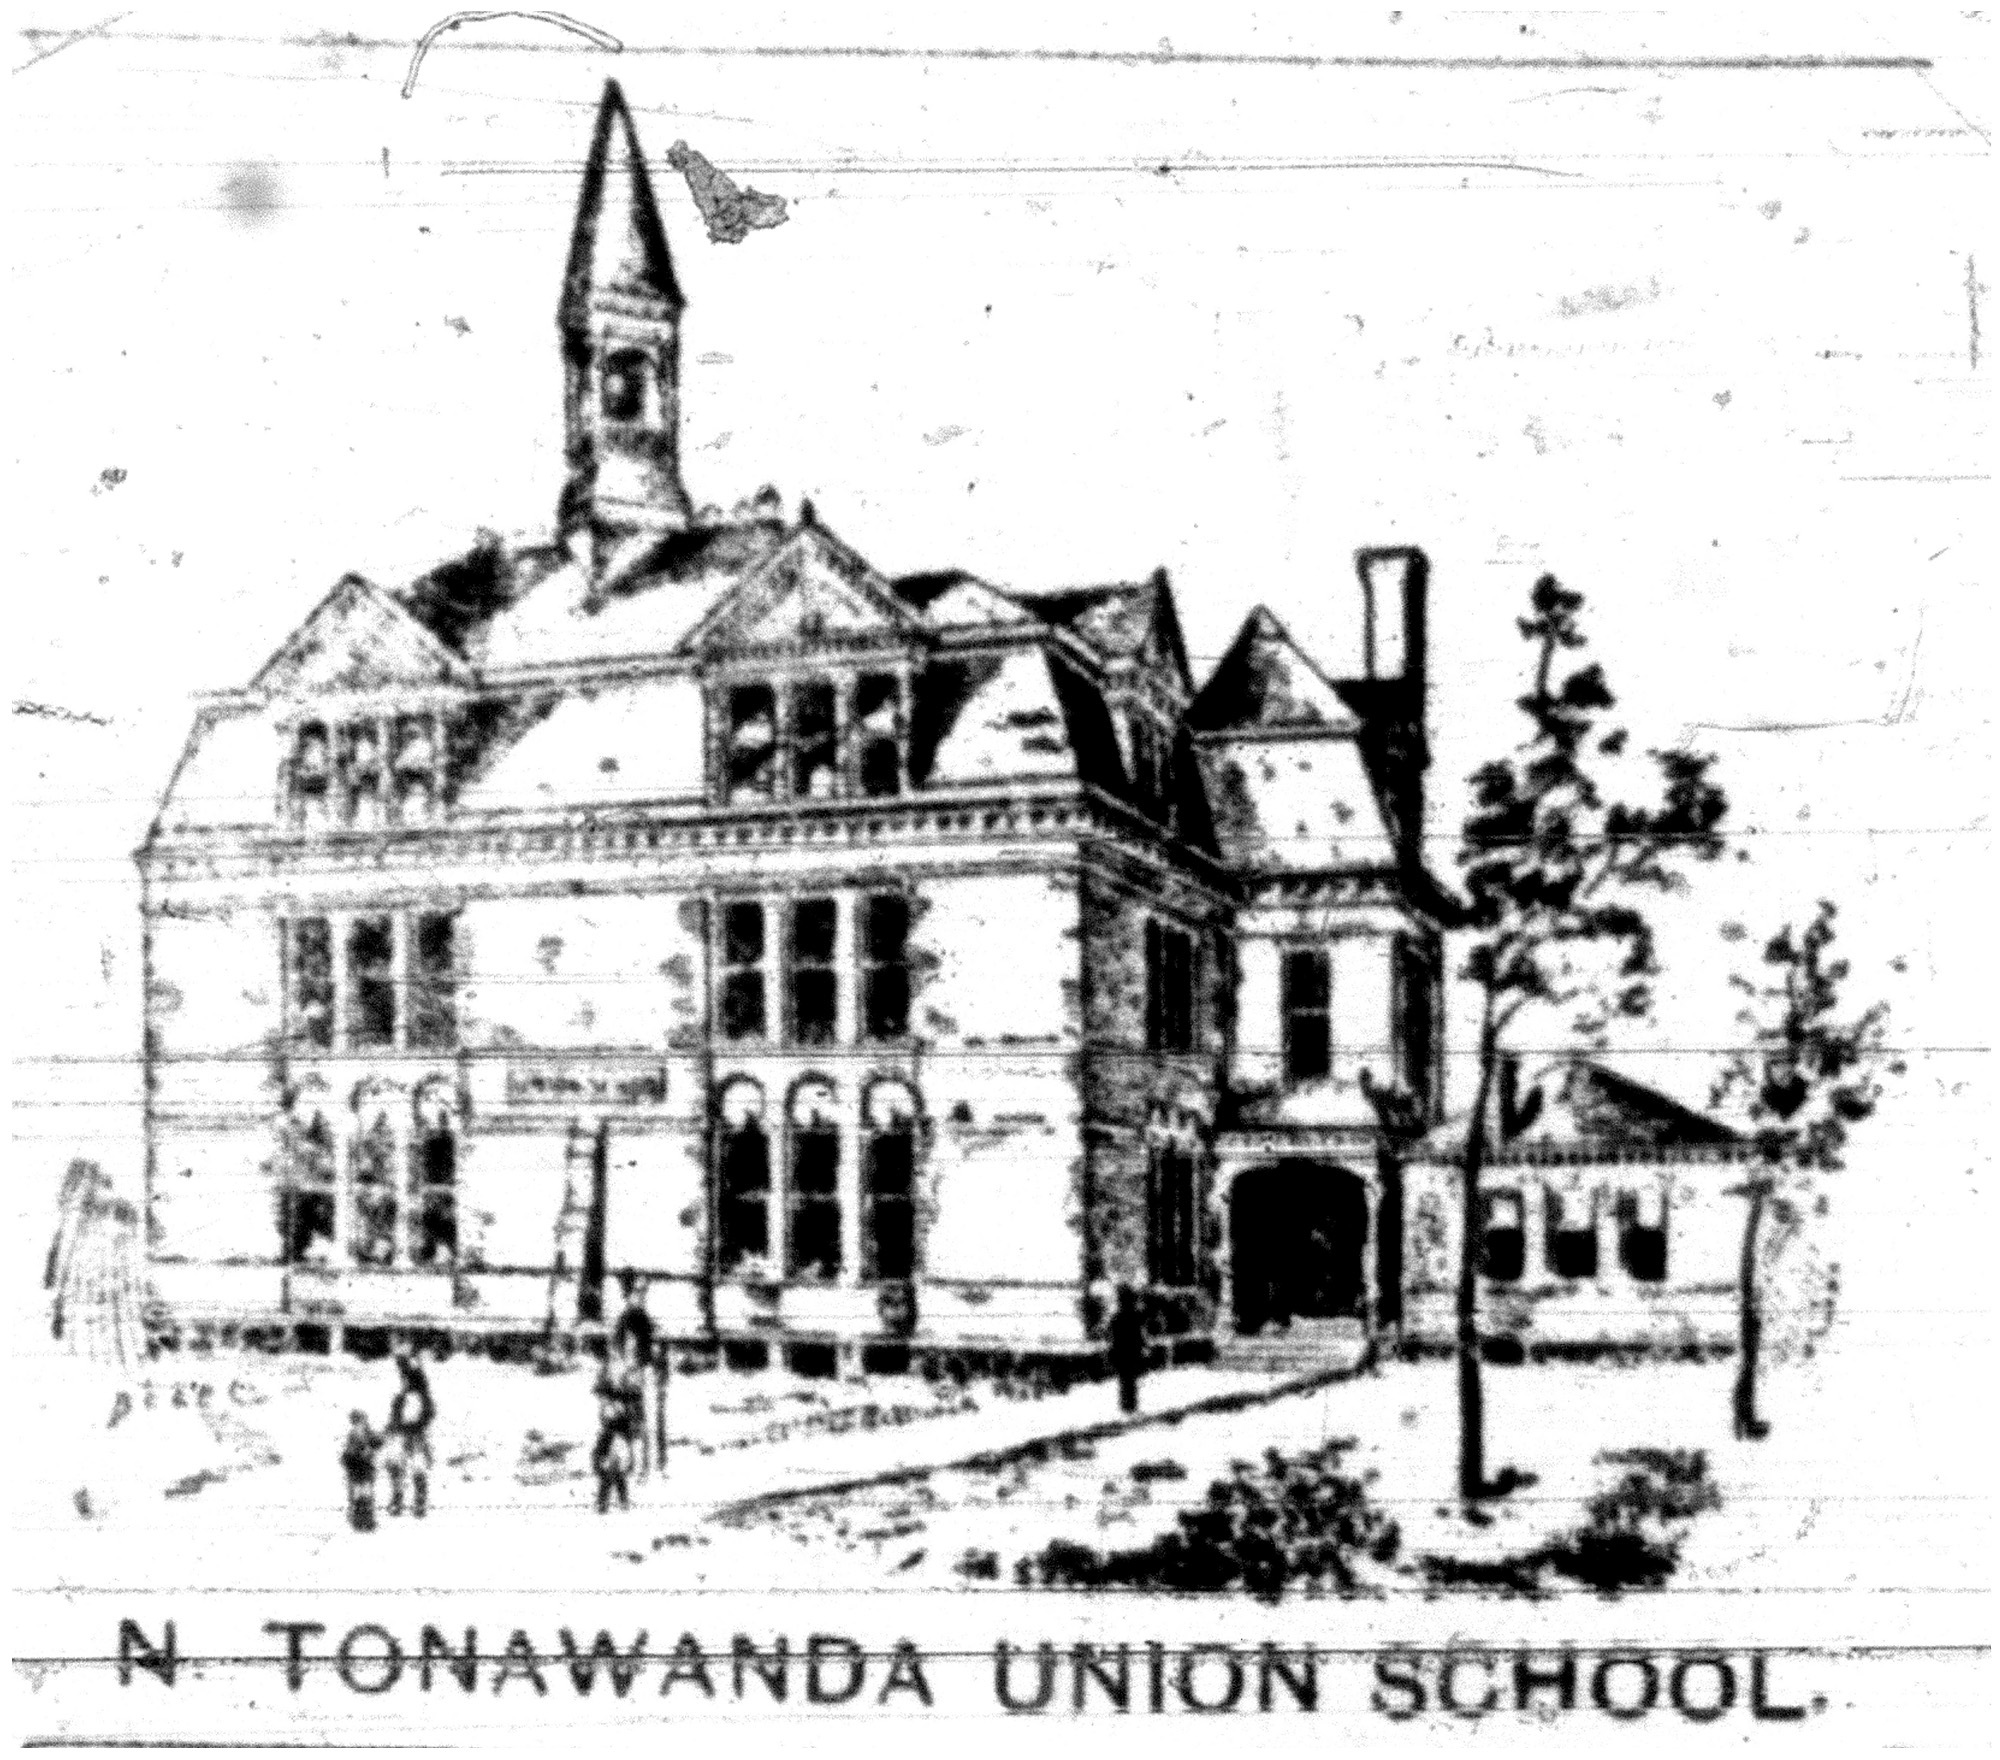 Union School, illustration (1893-08-05 Tonawanda News).jpg